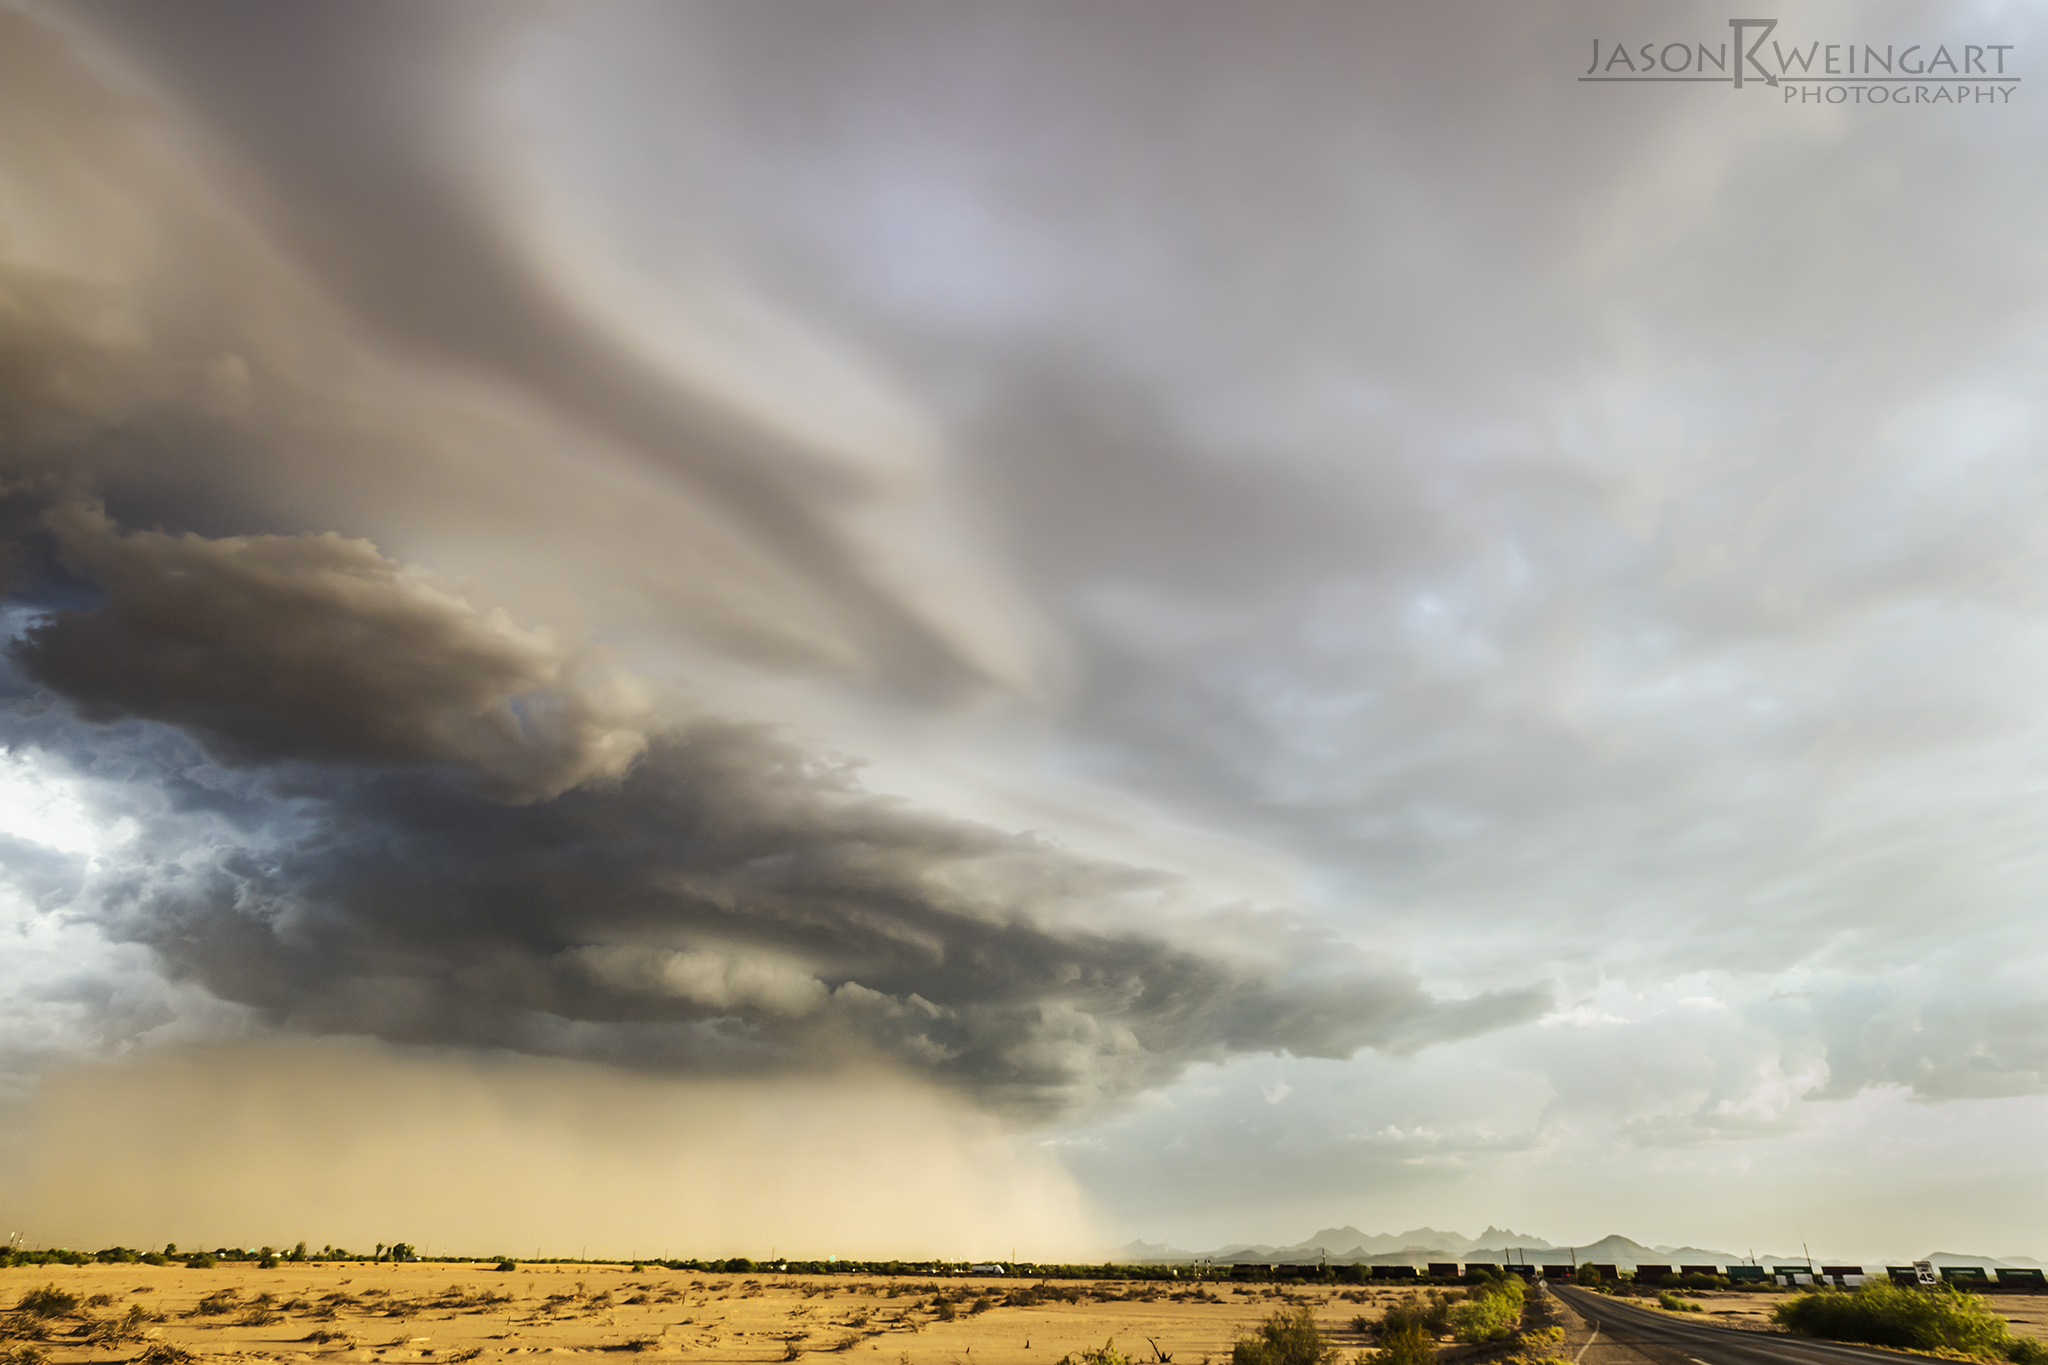 Dust stom approaching Red Rock, Arizona.